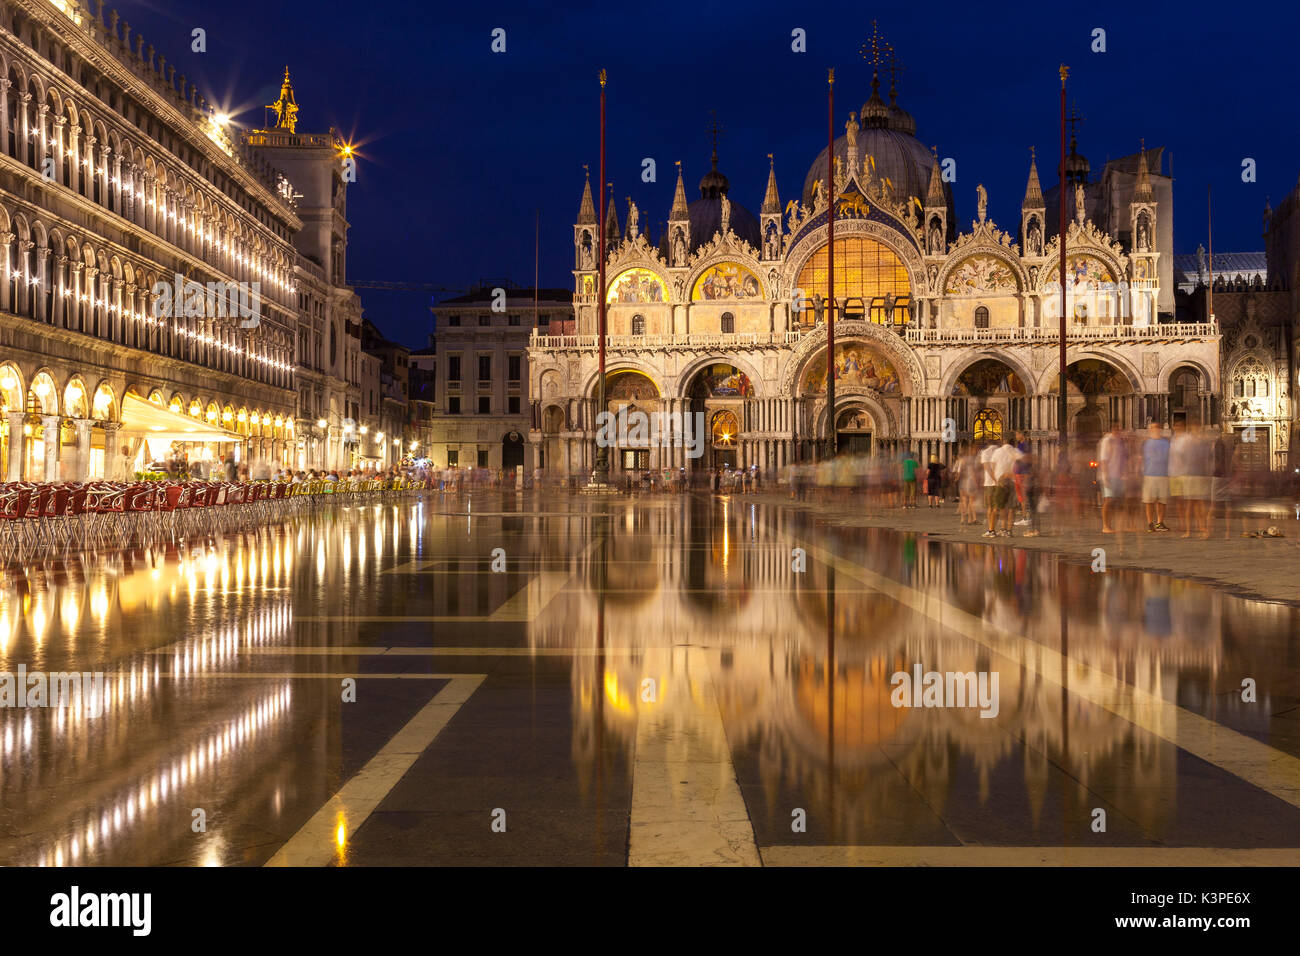 Basilica San Marco illuminated at night during blue hour reflected in the still water of acqua alta  in Piazza San Marco, Venice , Veneto, Italy with  - Stock Image